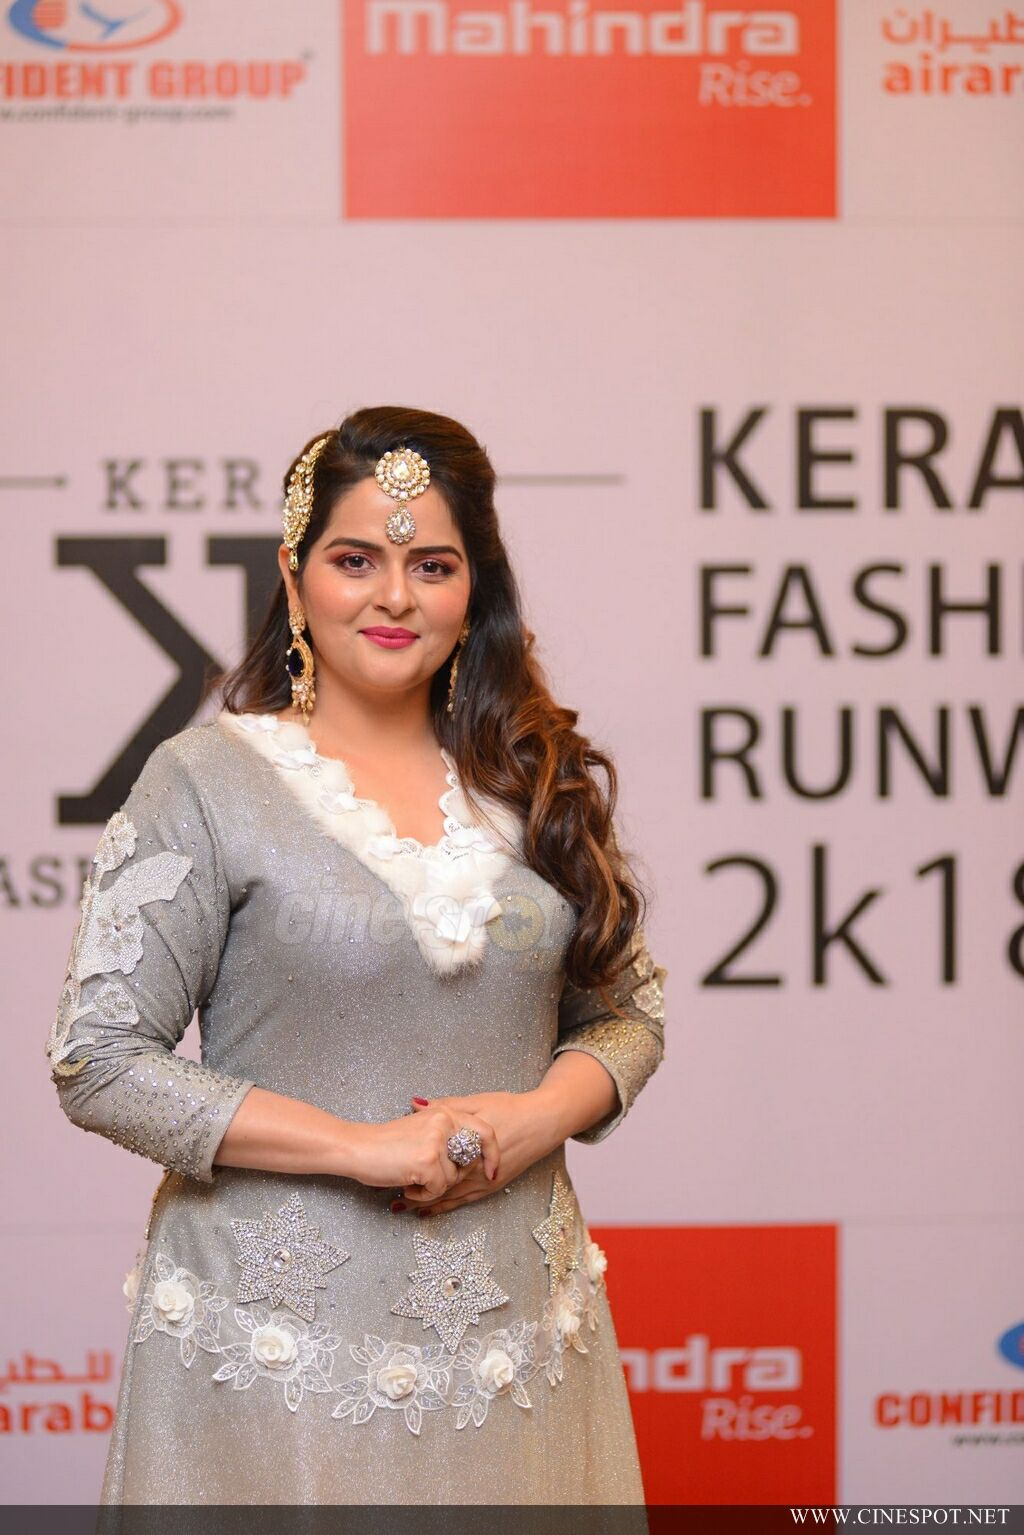 Roma Asrani at Kerala Fashion Runway 2018 (19)